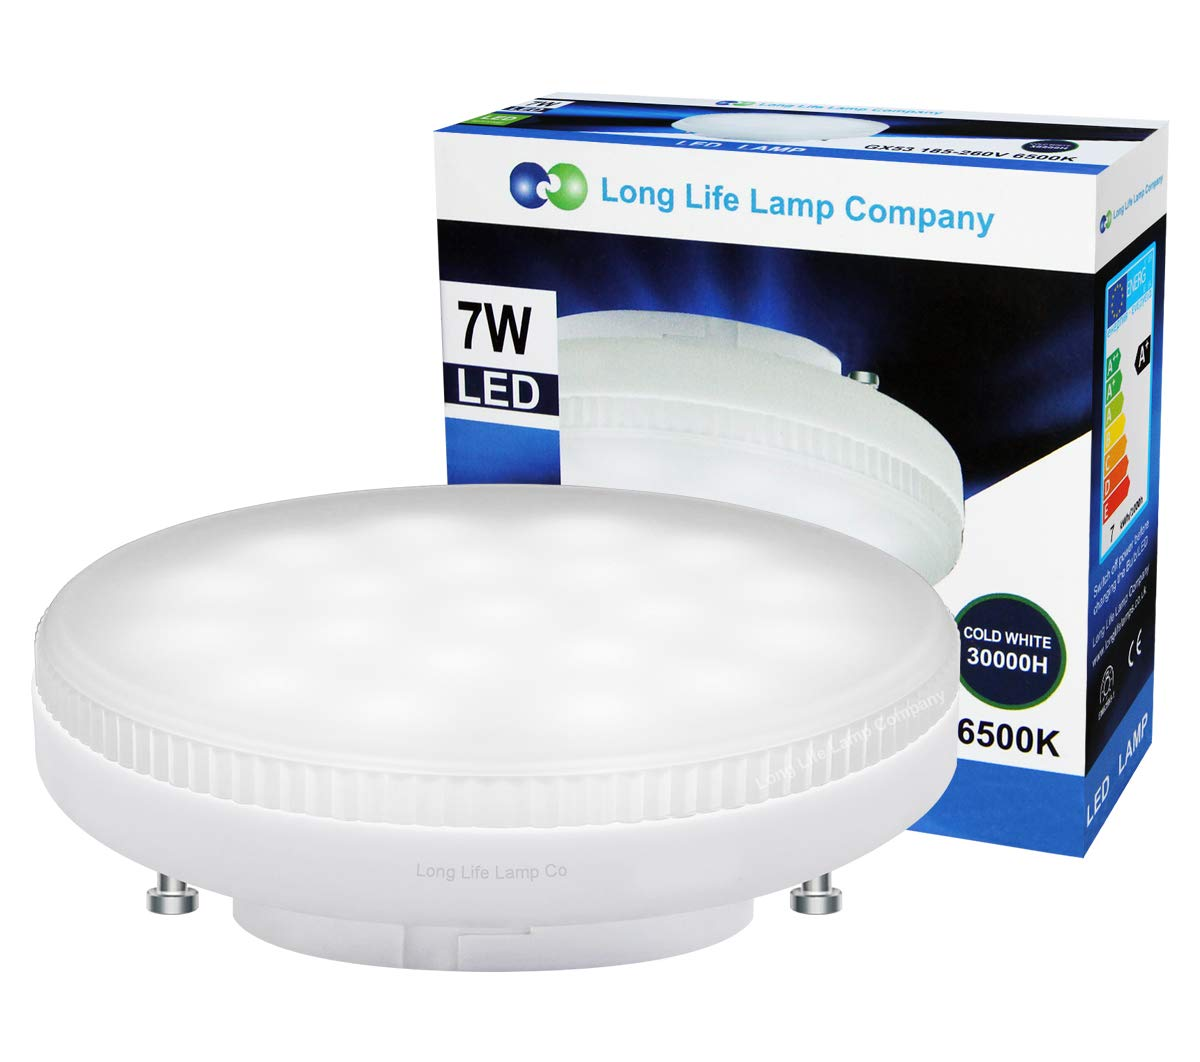 7w LED GX53 Light Bulb Cool White Replacement for Round CFL Under-Shelf Lighting, Display Cabinets, Kitchen Units